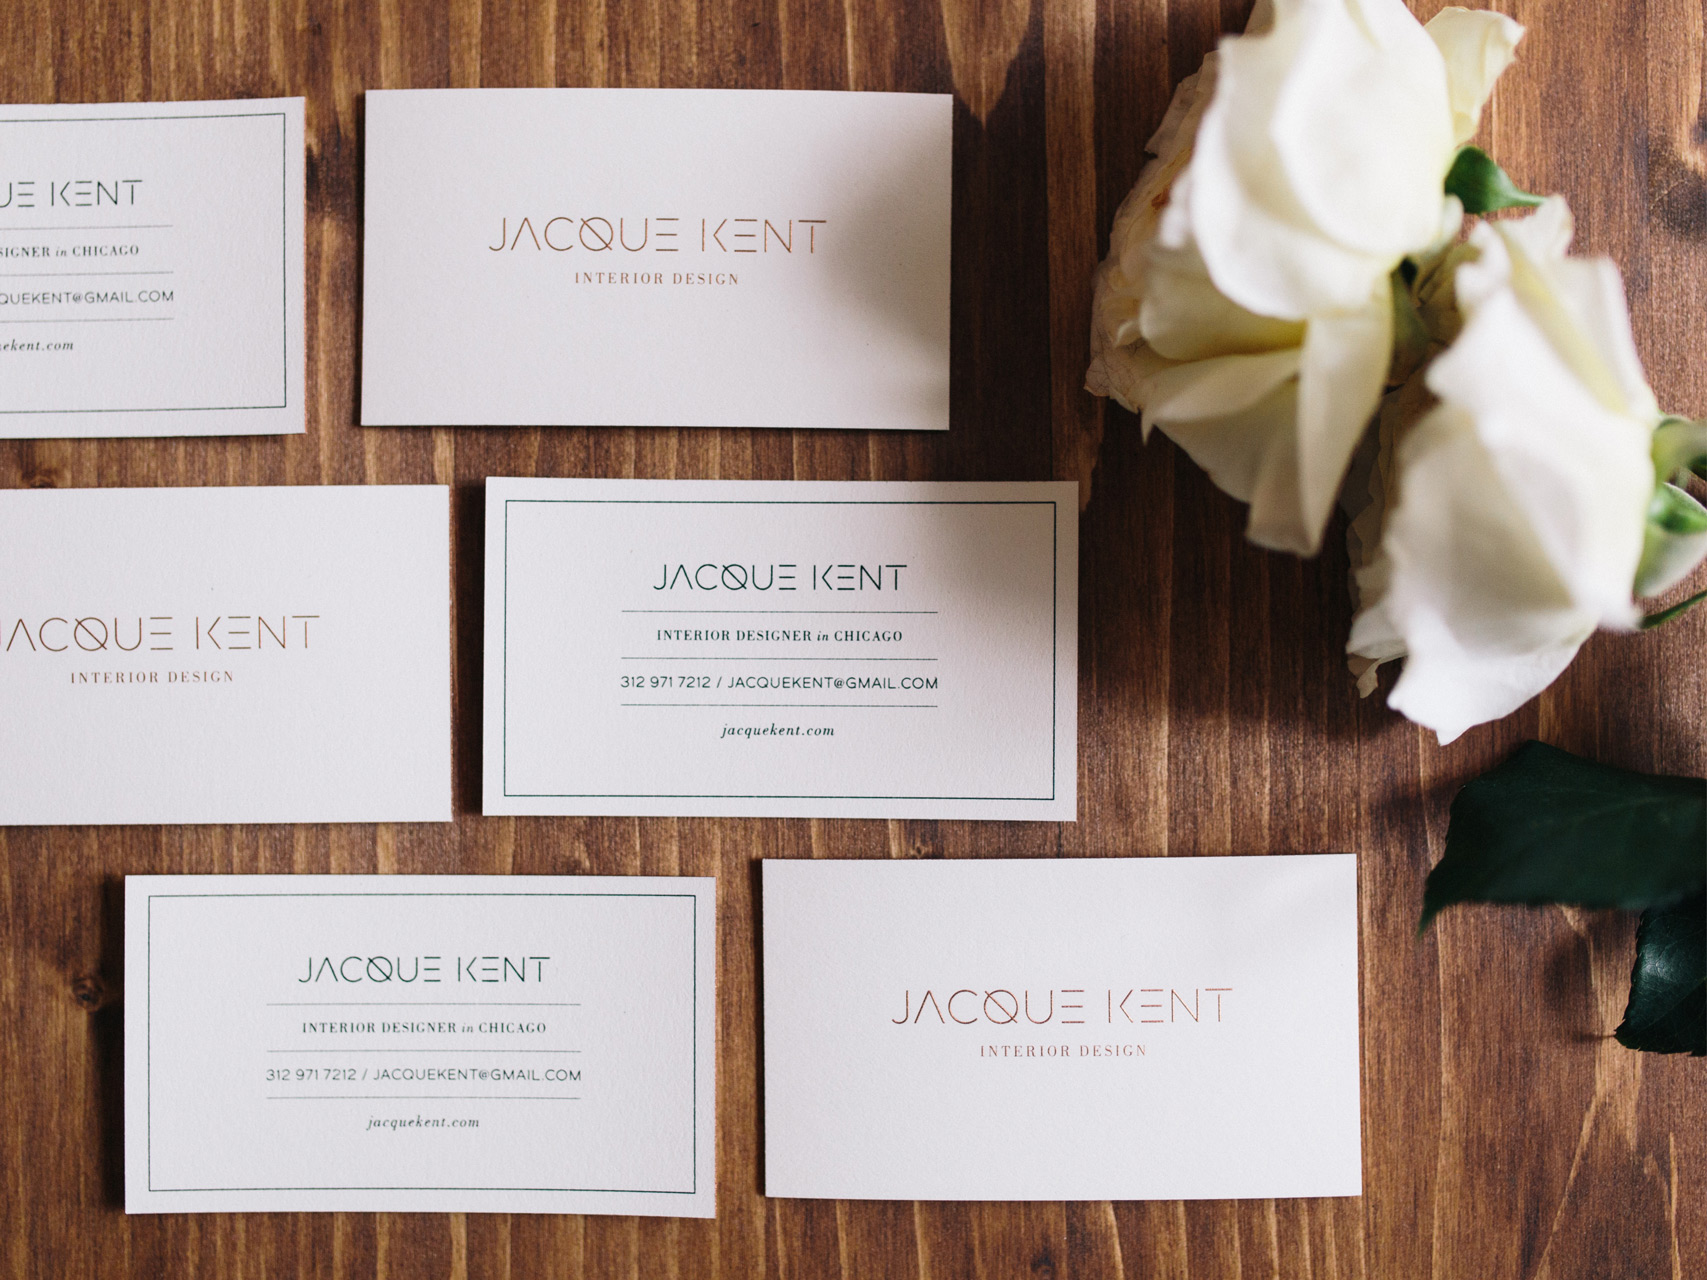 Jacque Kent Logo and Branding by Hello Gypsy